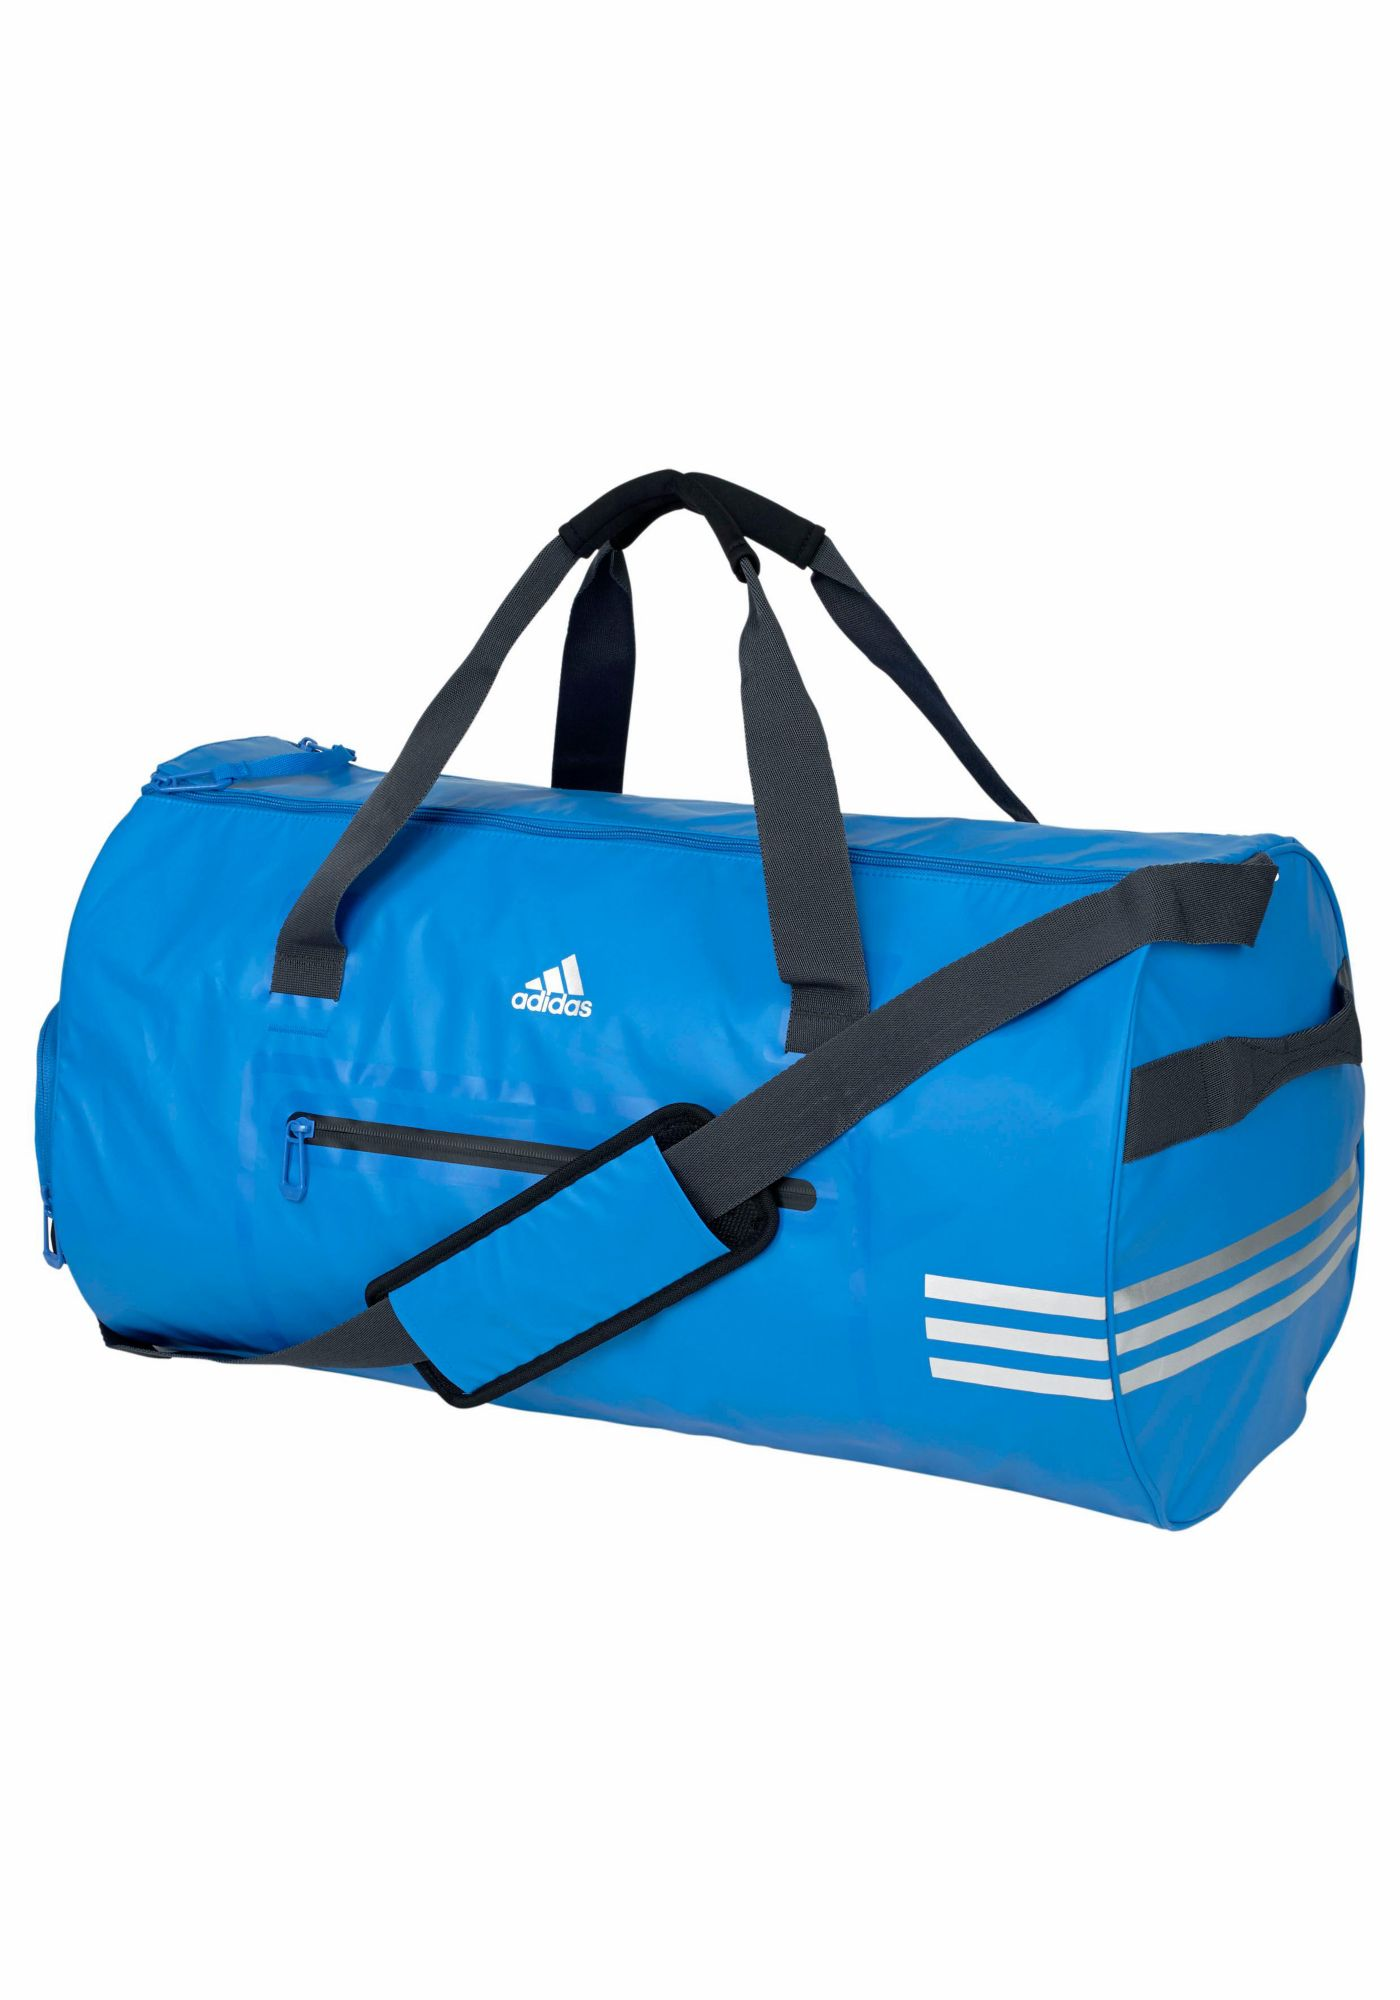 ADIDAS PERFORMANCE adidas Performance CLIMACOOL TEAMBAG S Sporttasche